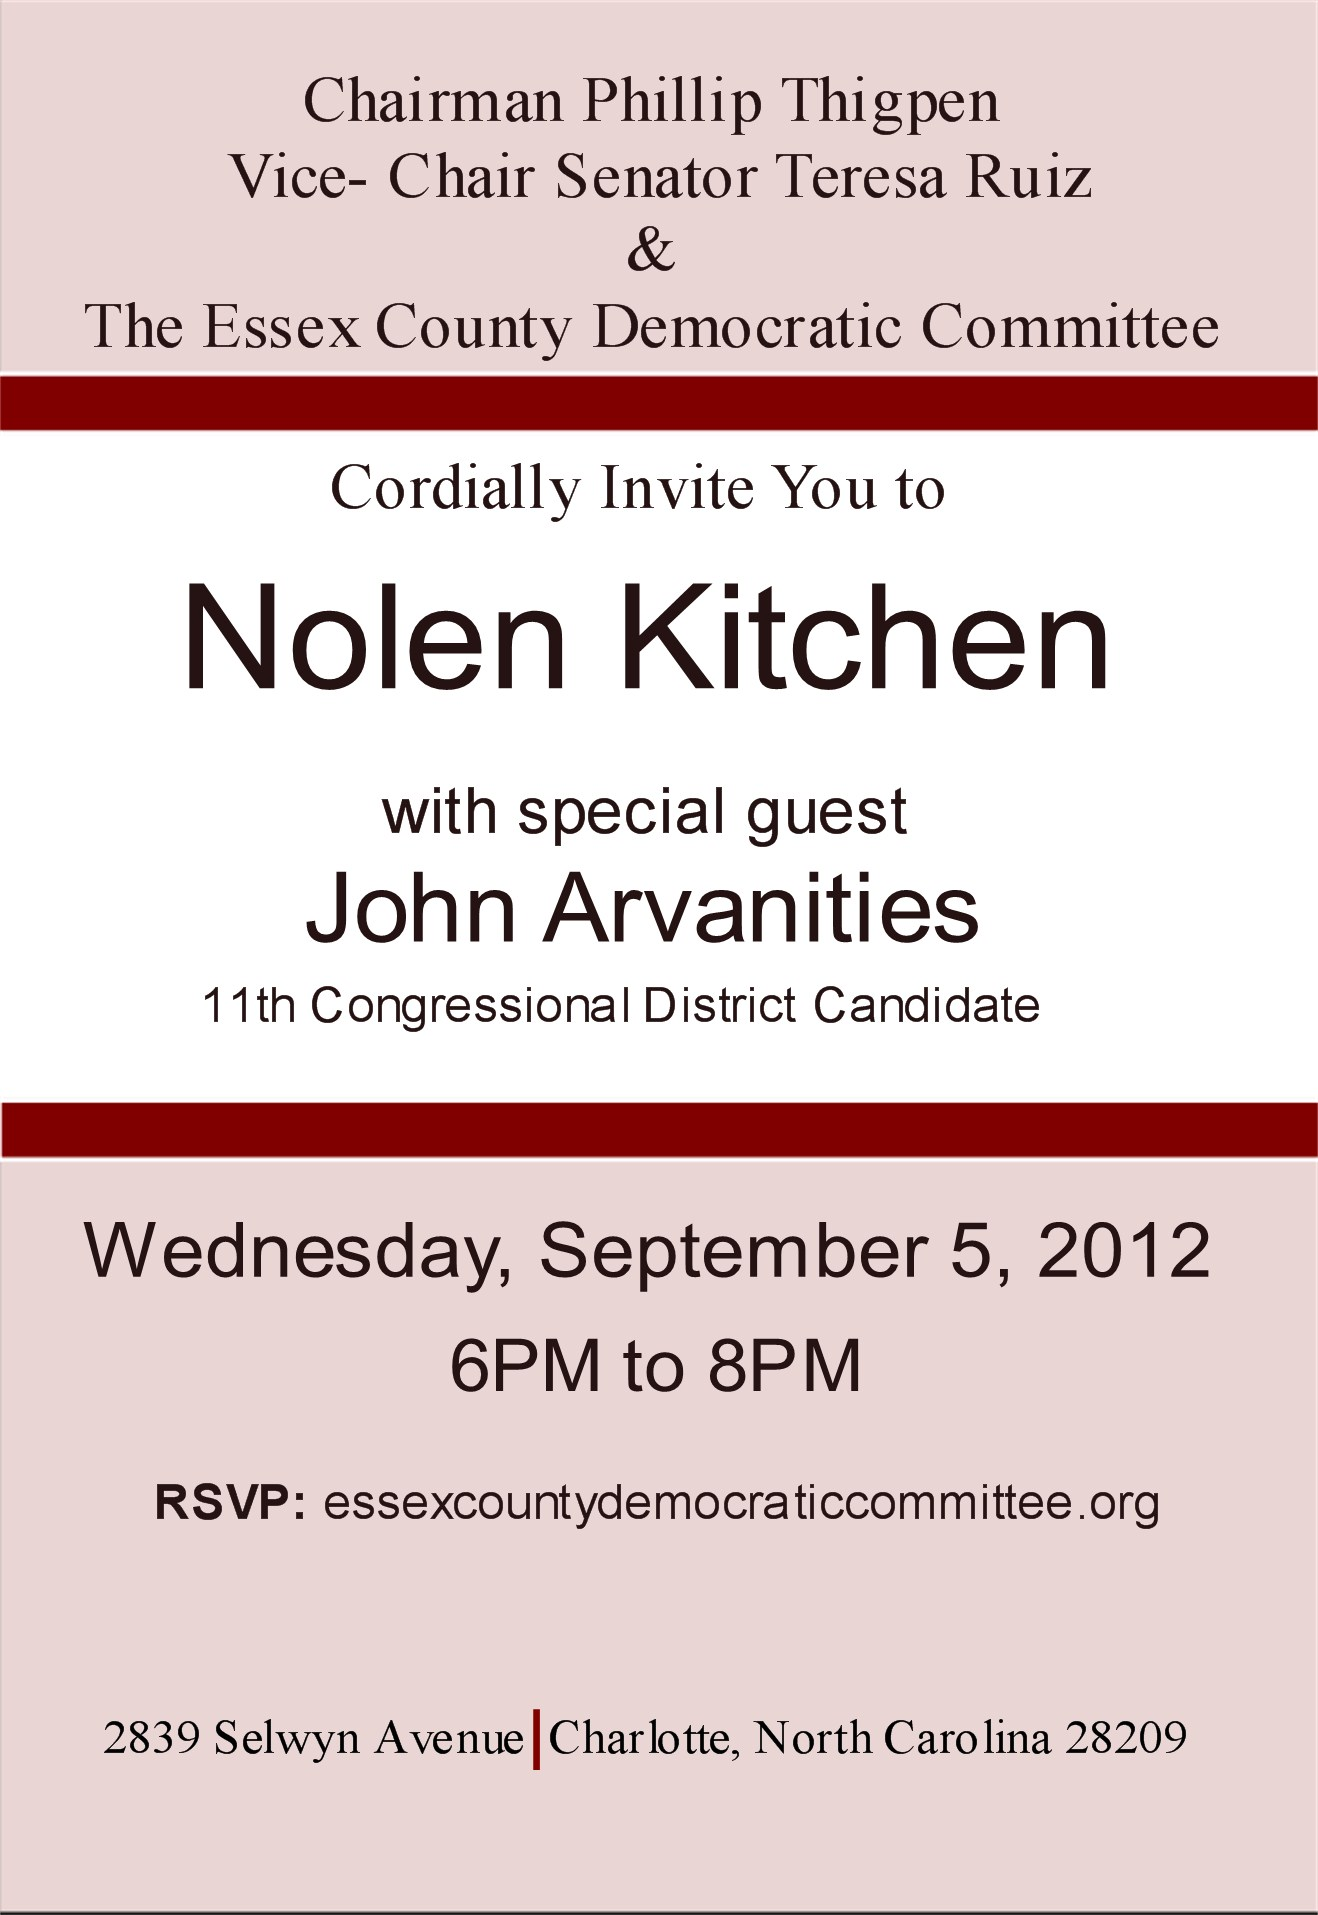 Nolens_Kitchen_Event_Invitation_JPG.jpg